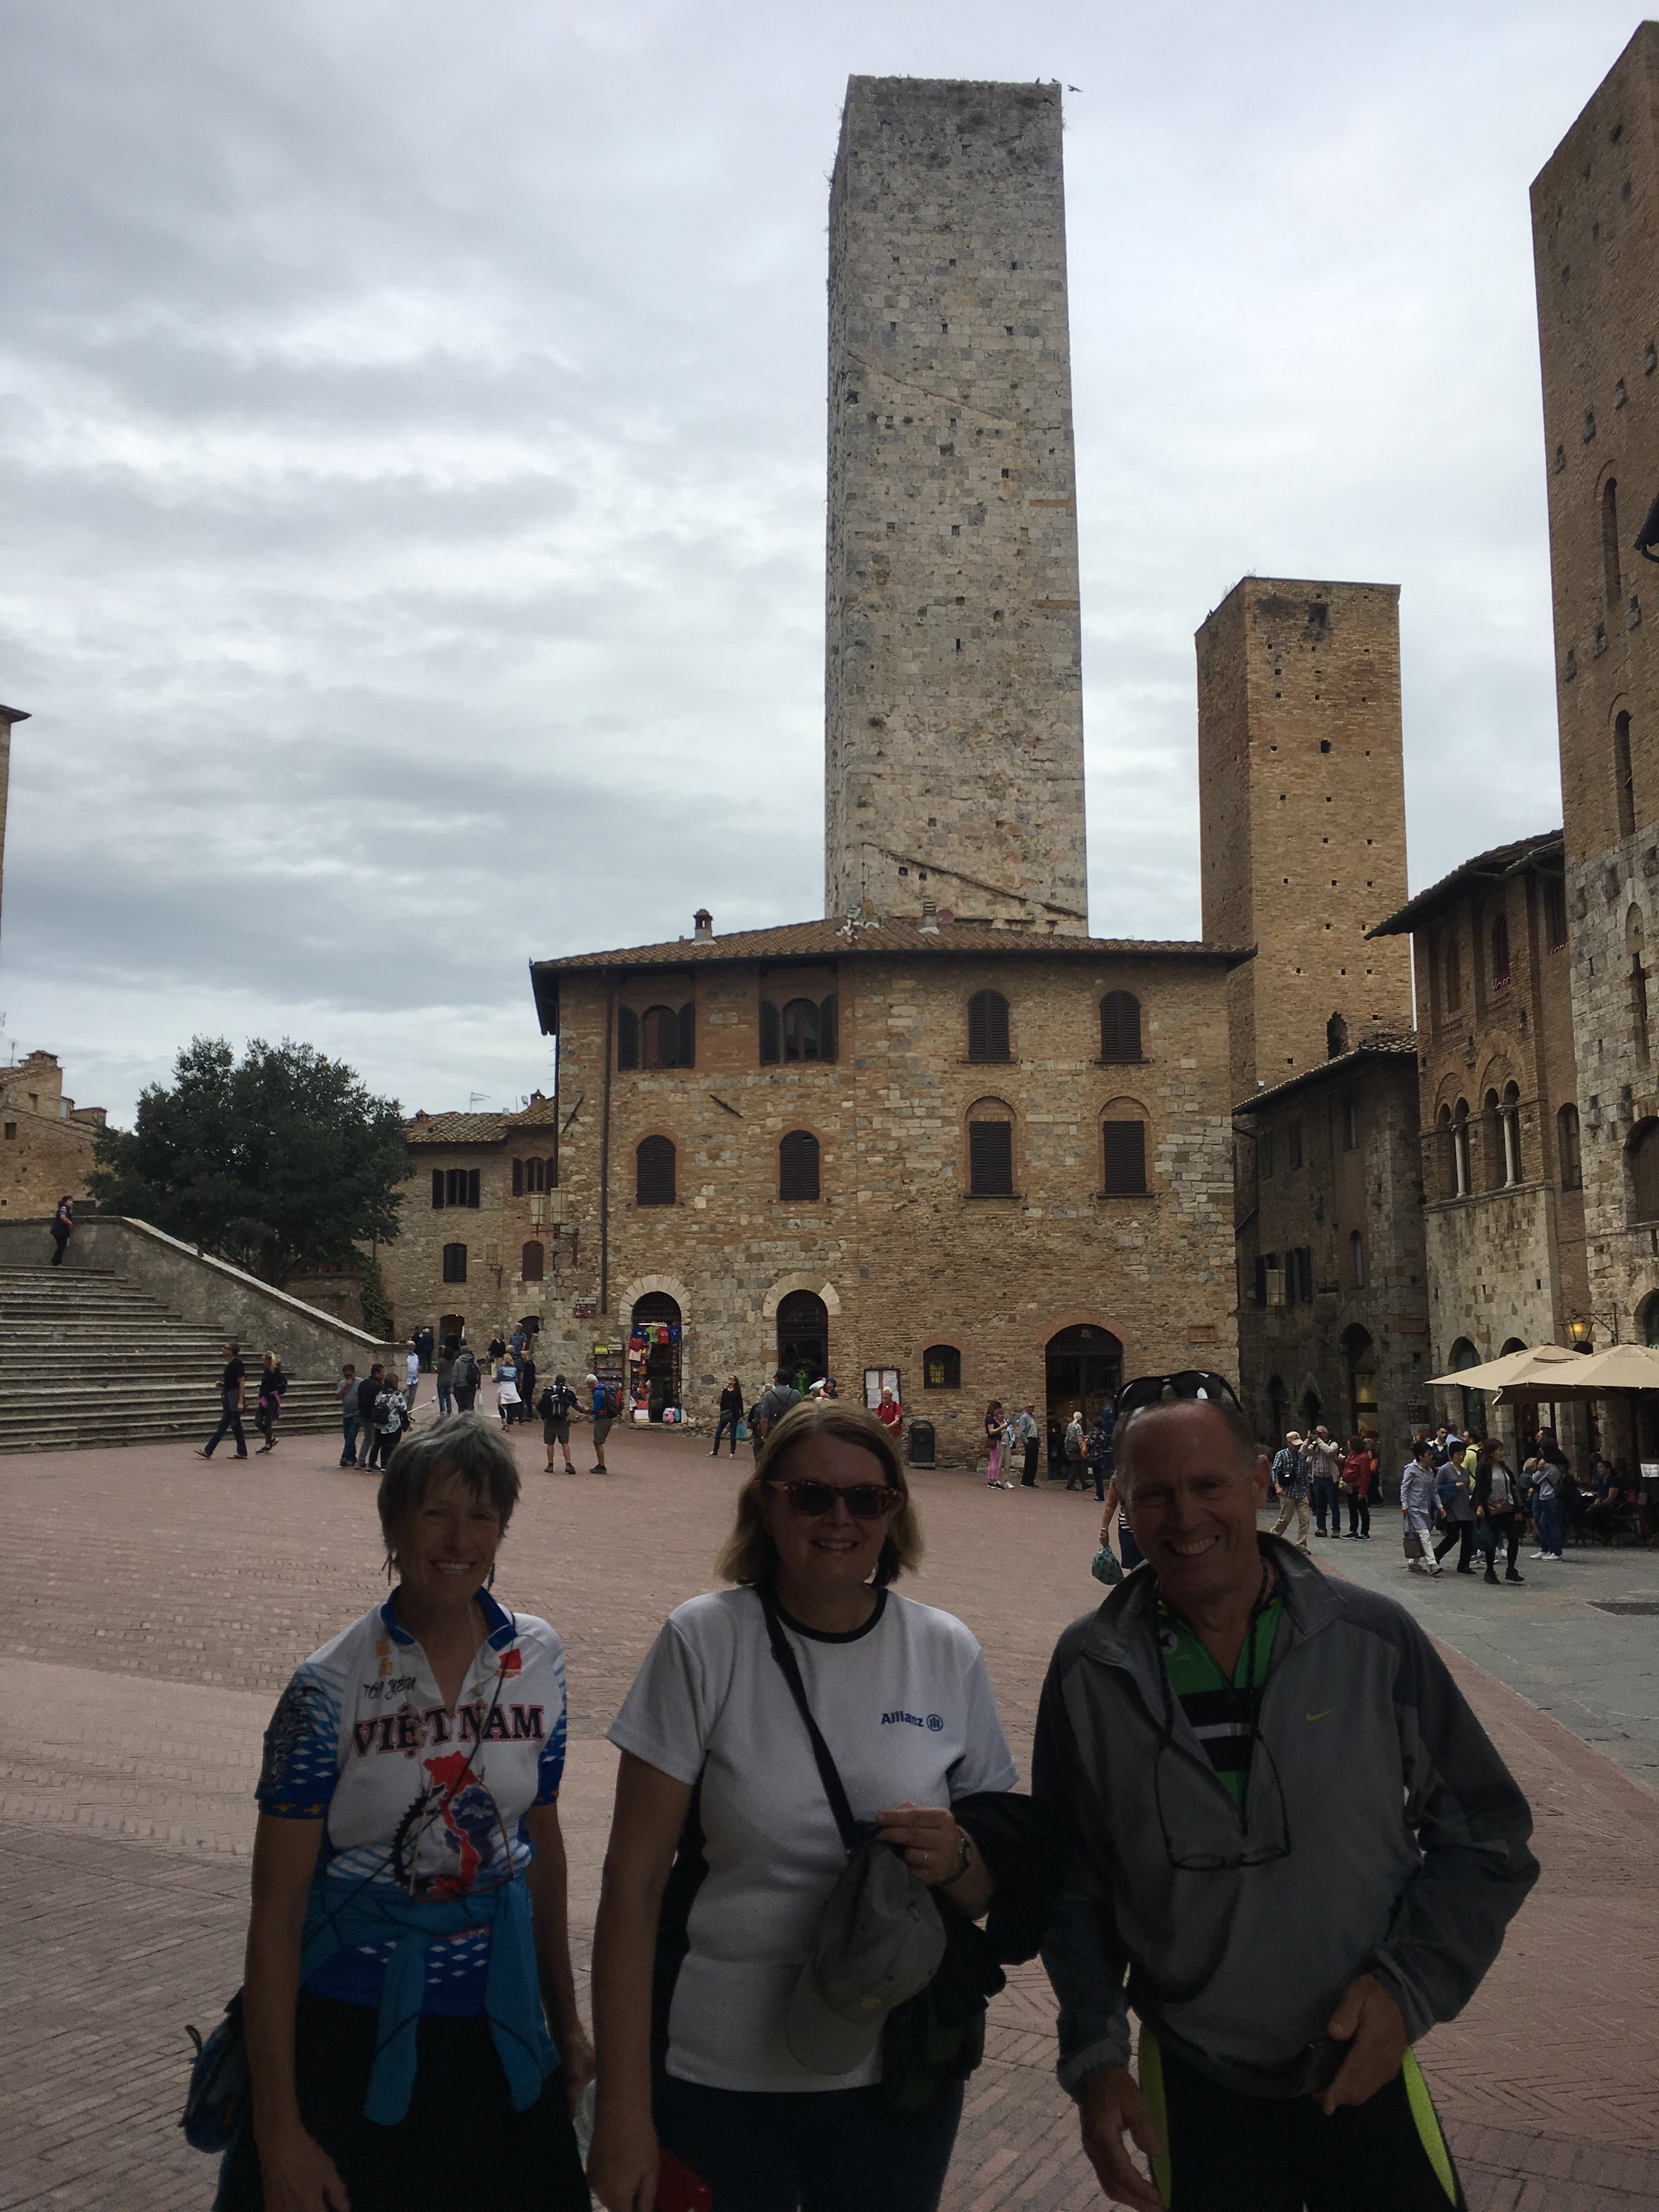 Becky, Karen and Charlie being tourists in San Gimignano